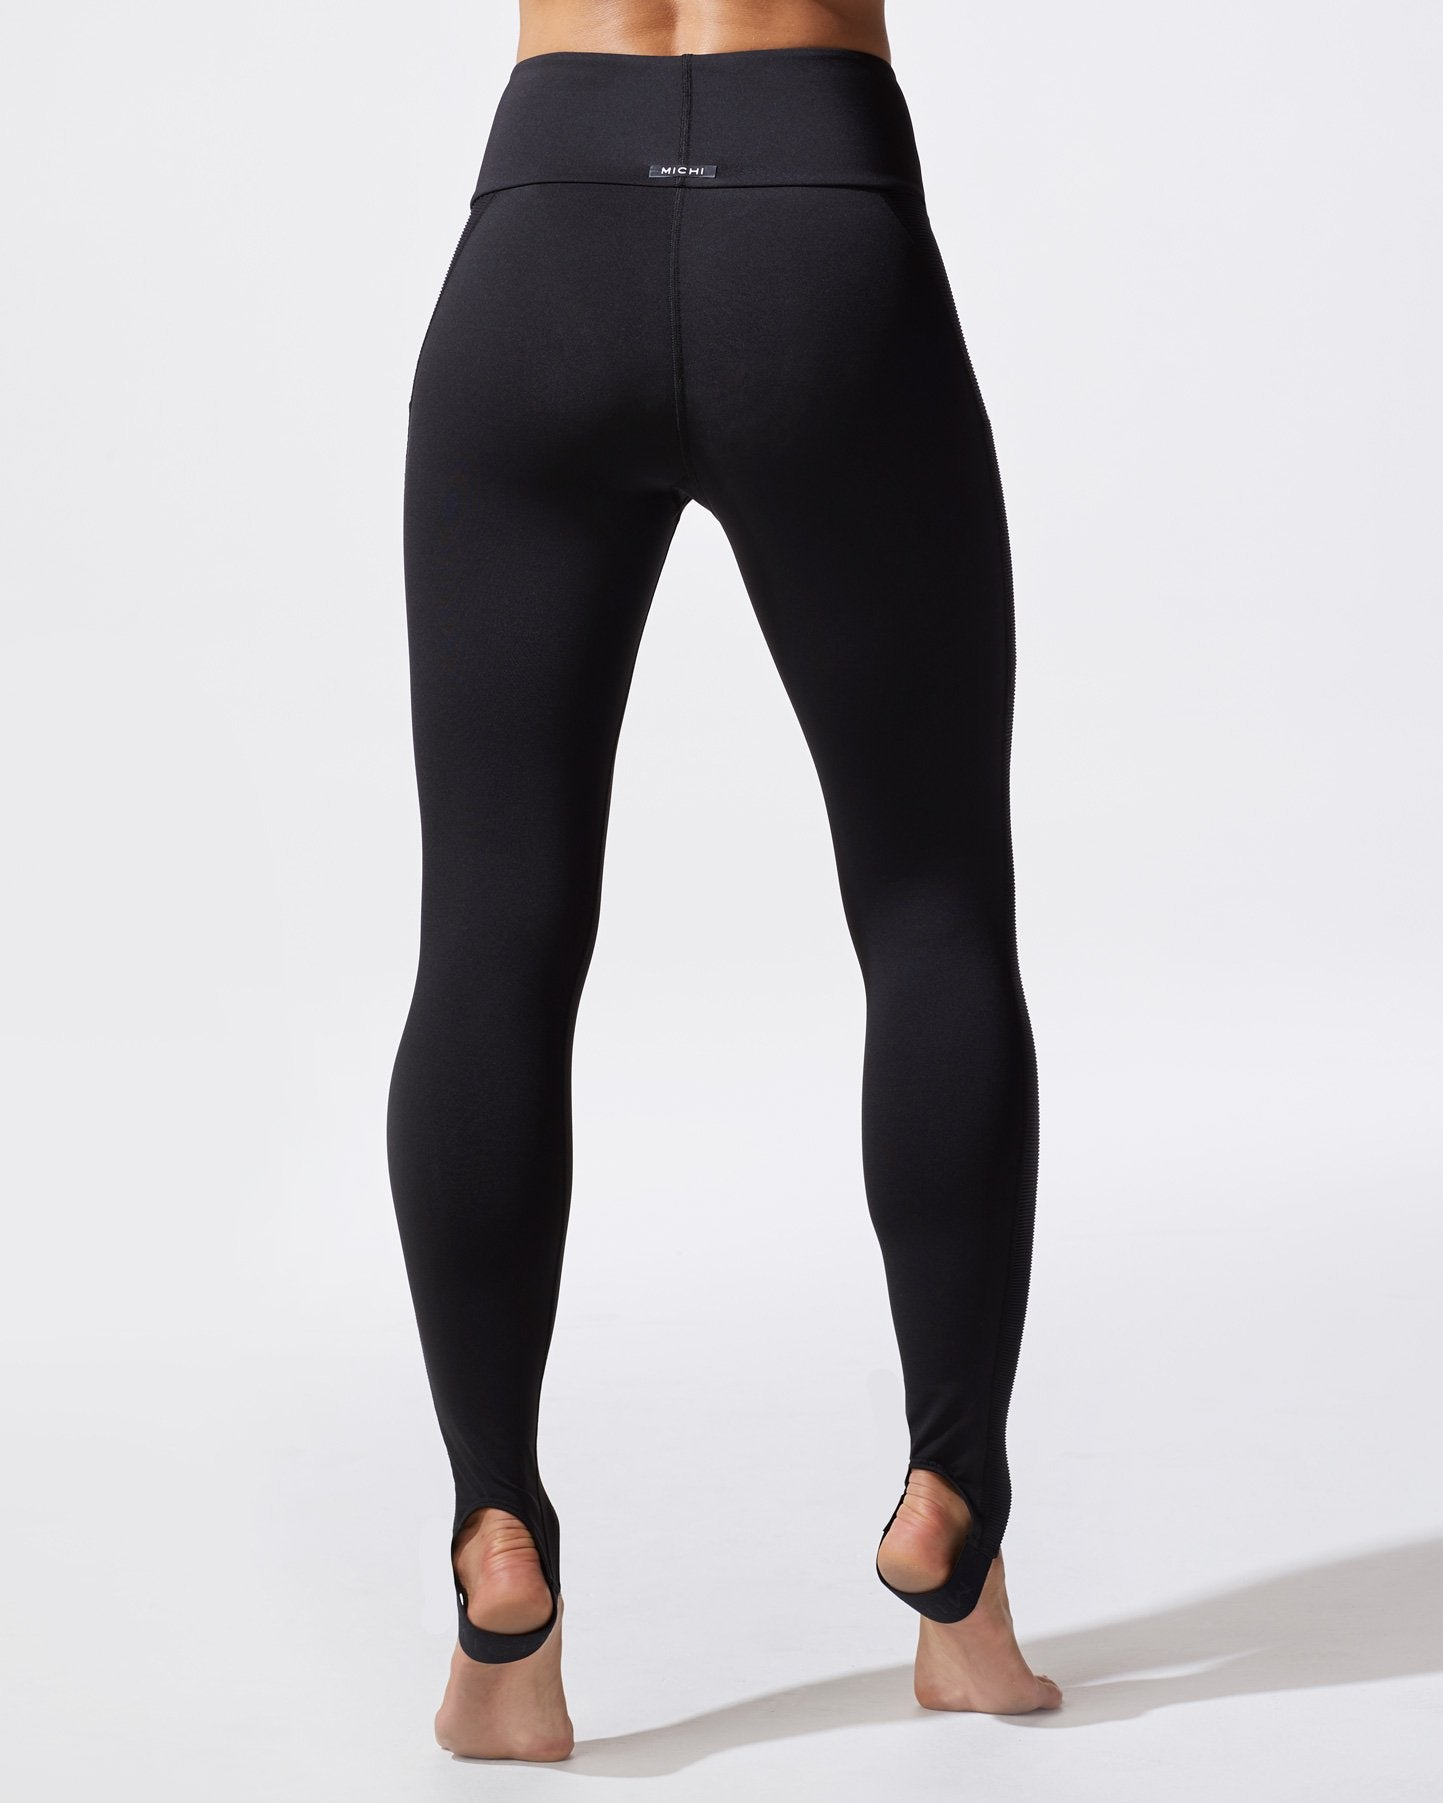 uproar-legging-black